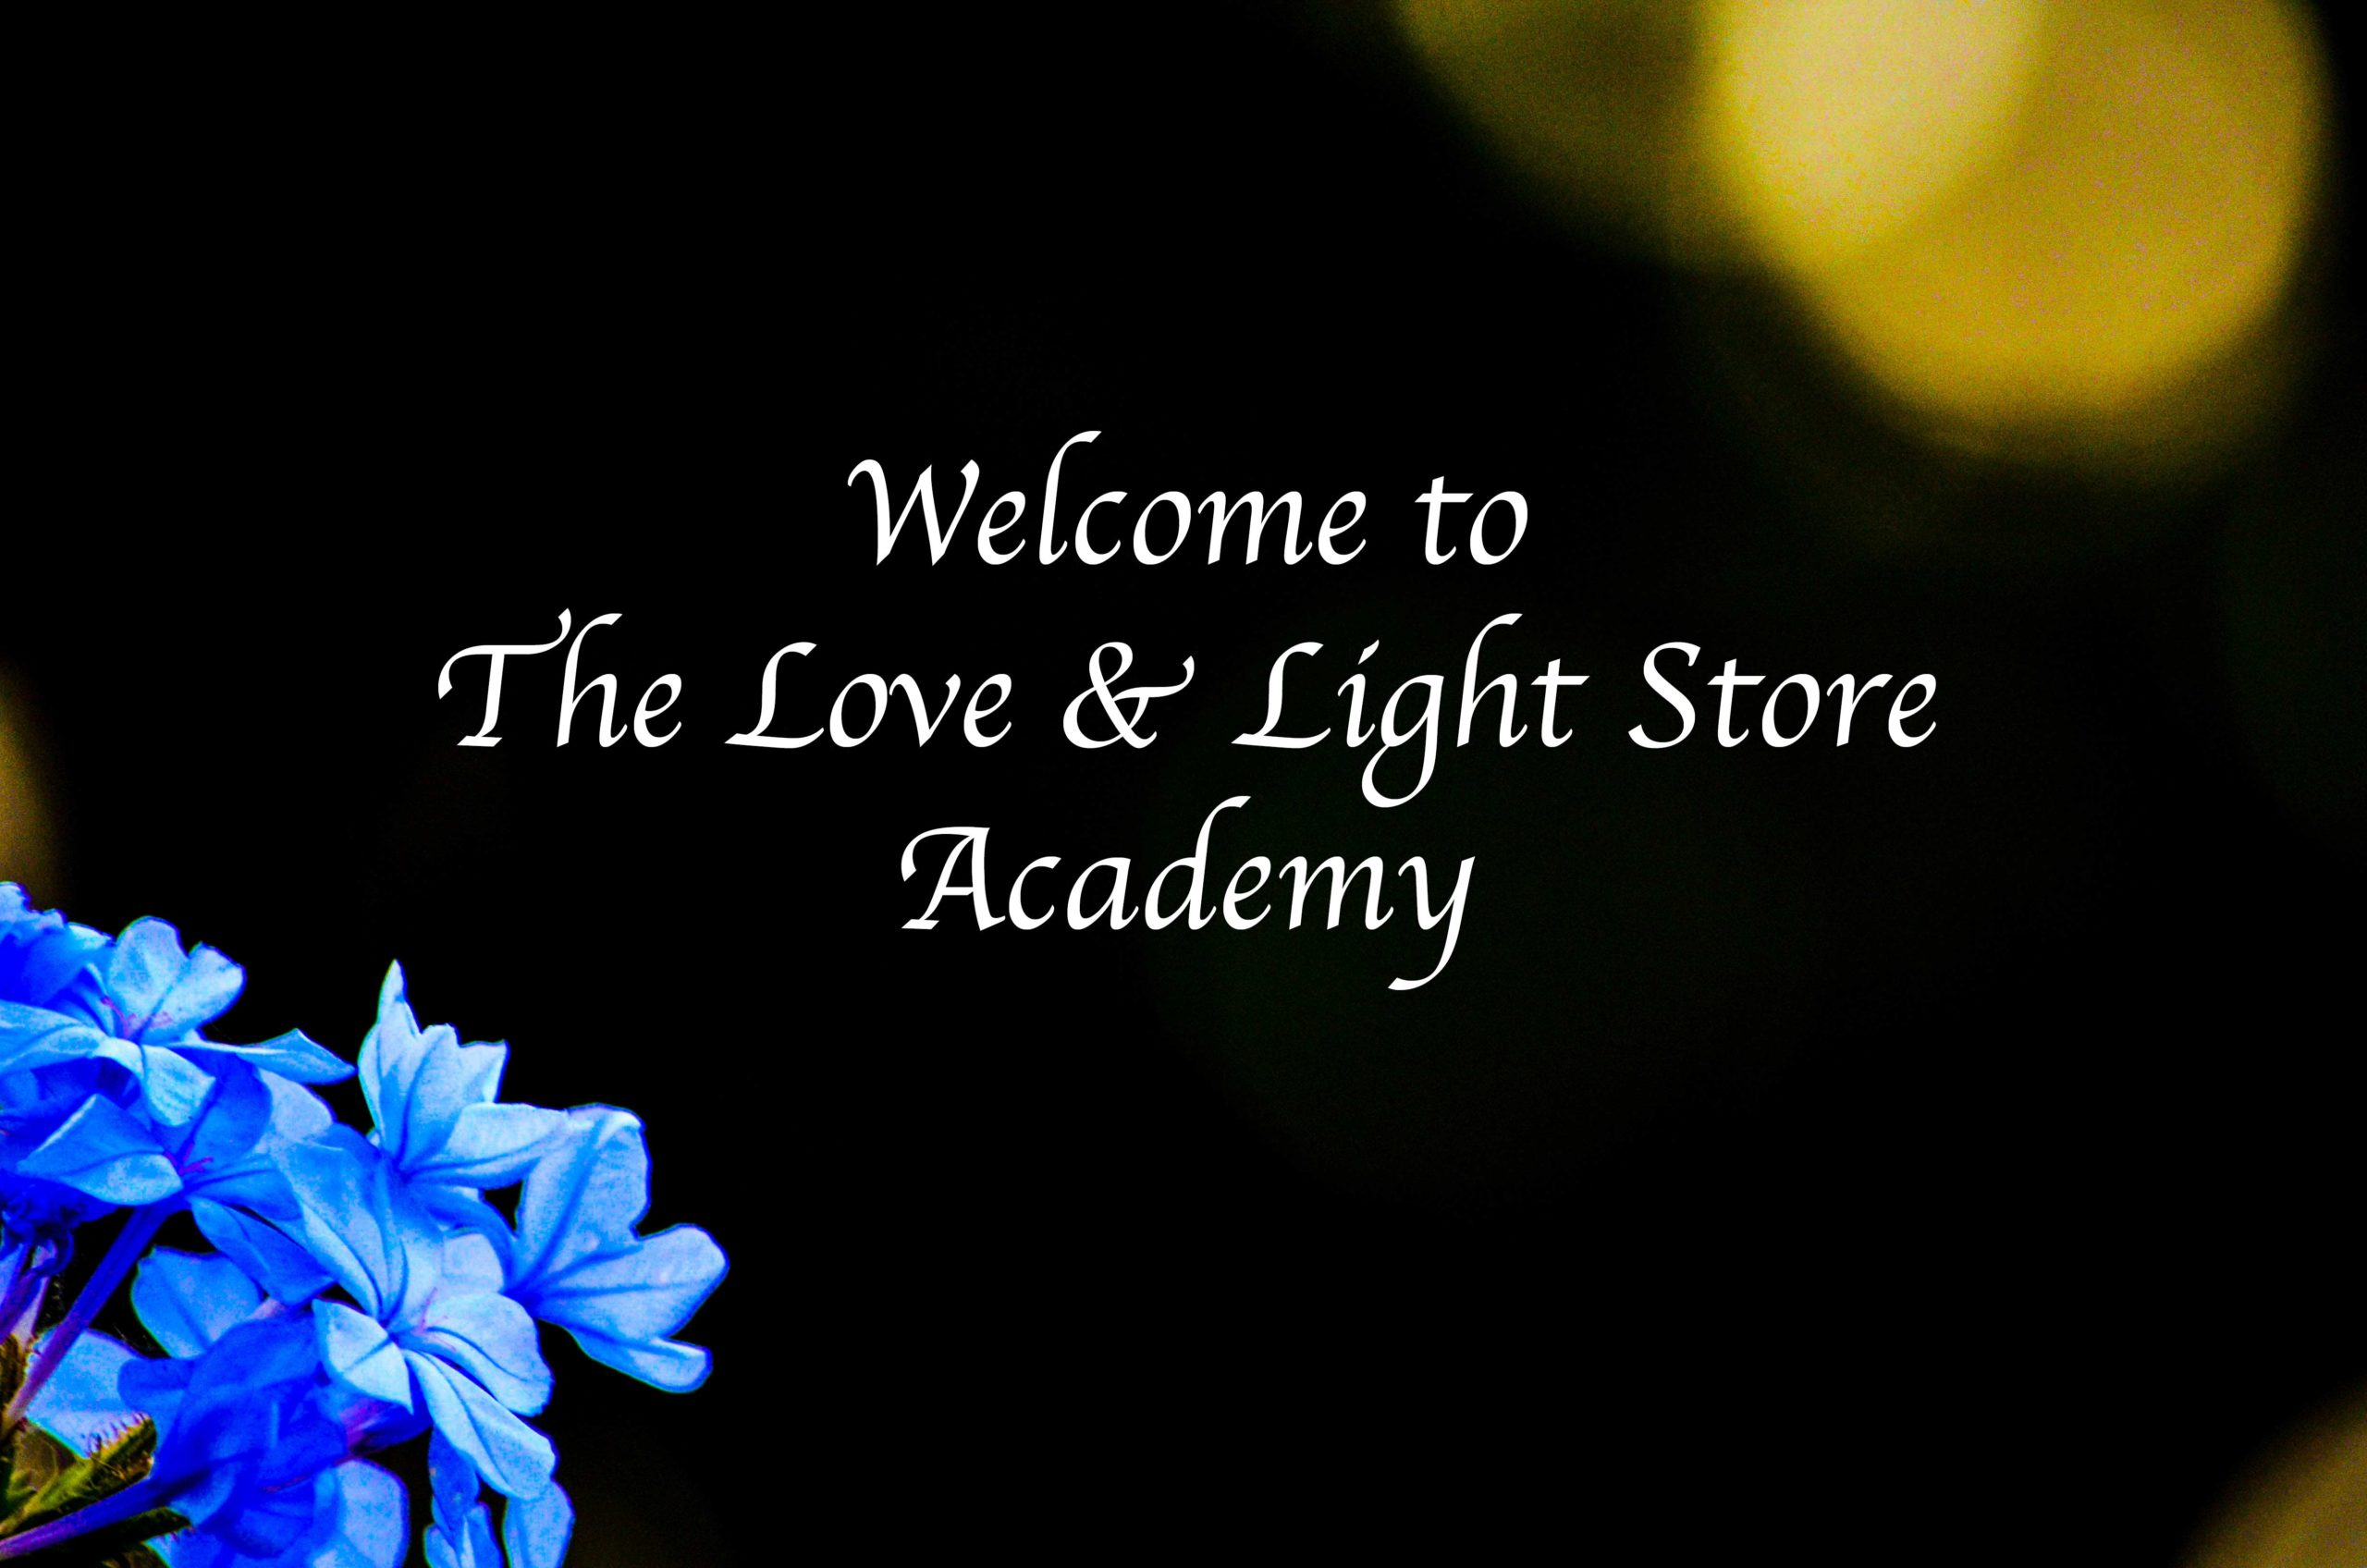 The Love & LIght Store Academy has emerged. It is to be a bridge between the seeker and the teacher, the teacher and the seeker. For the benefit of humanity